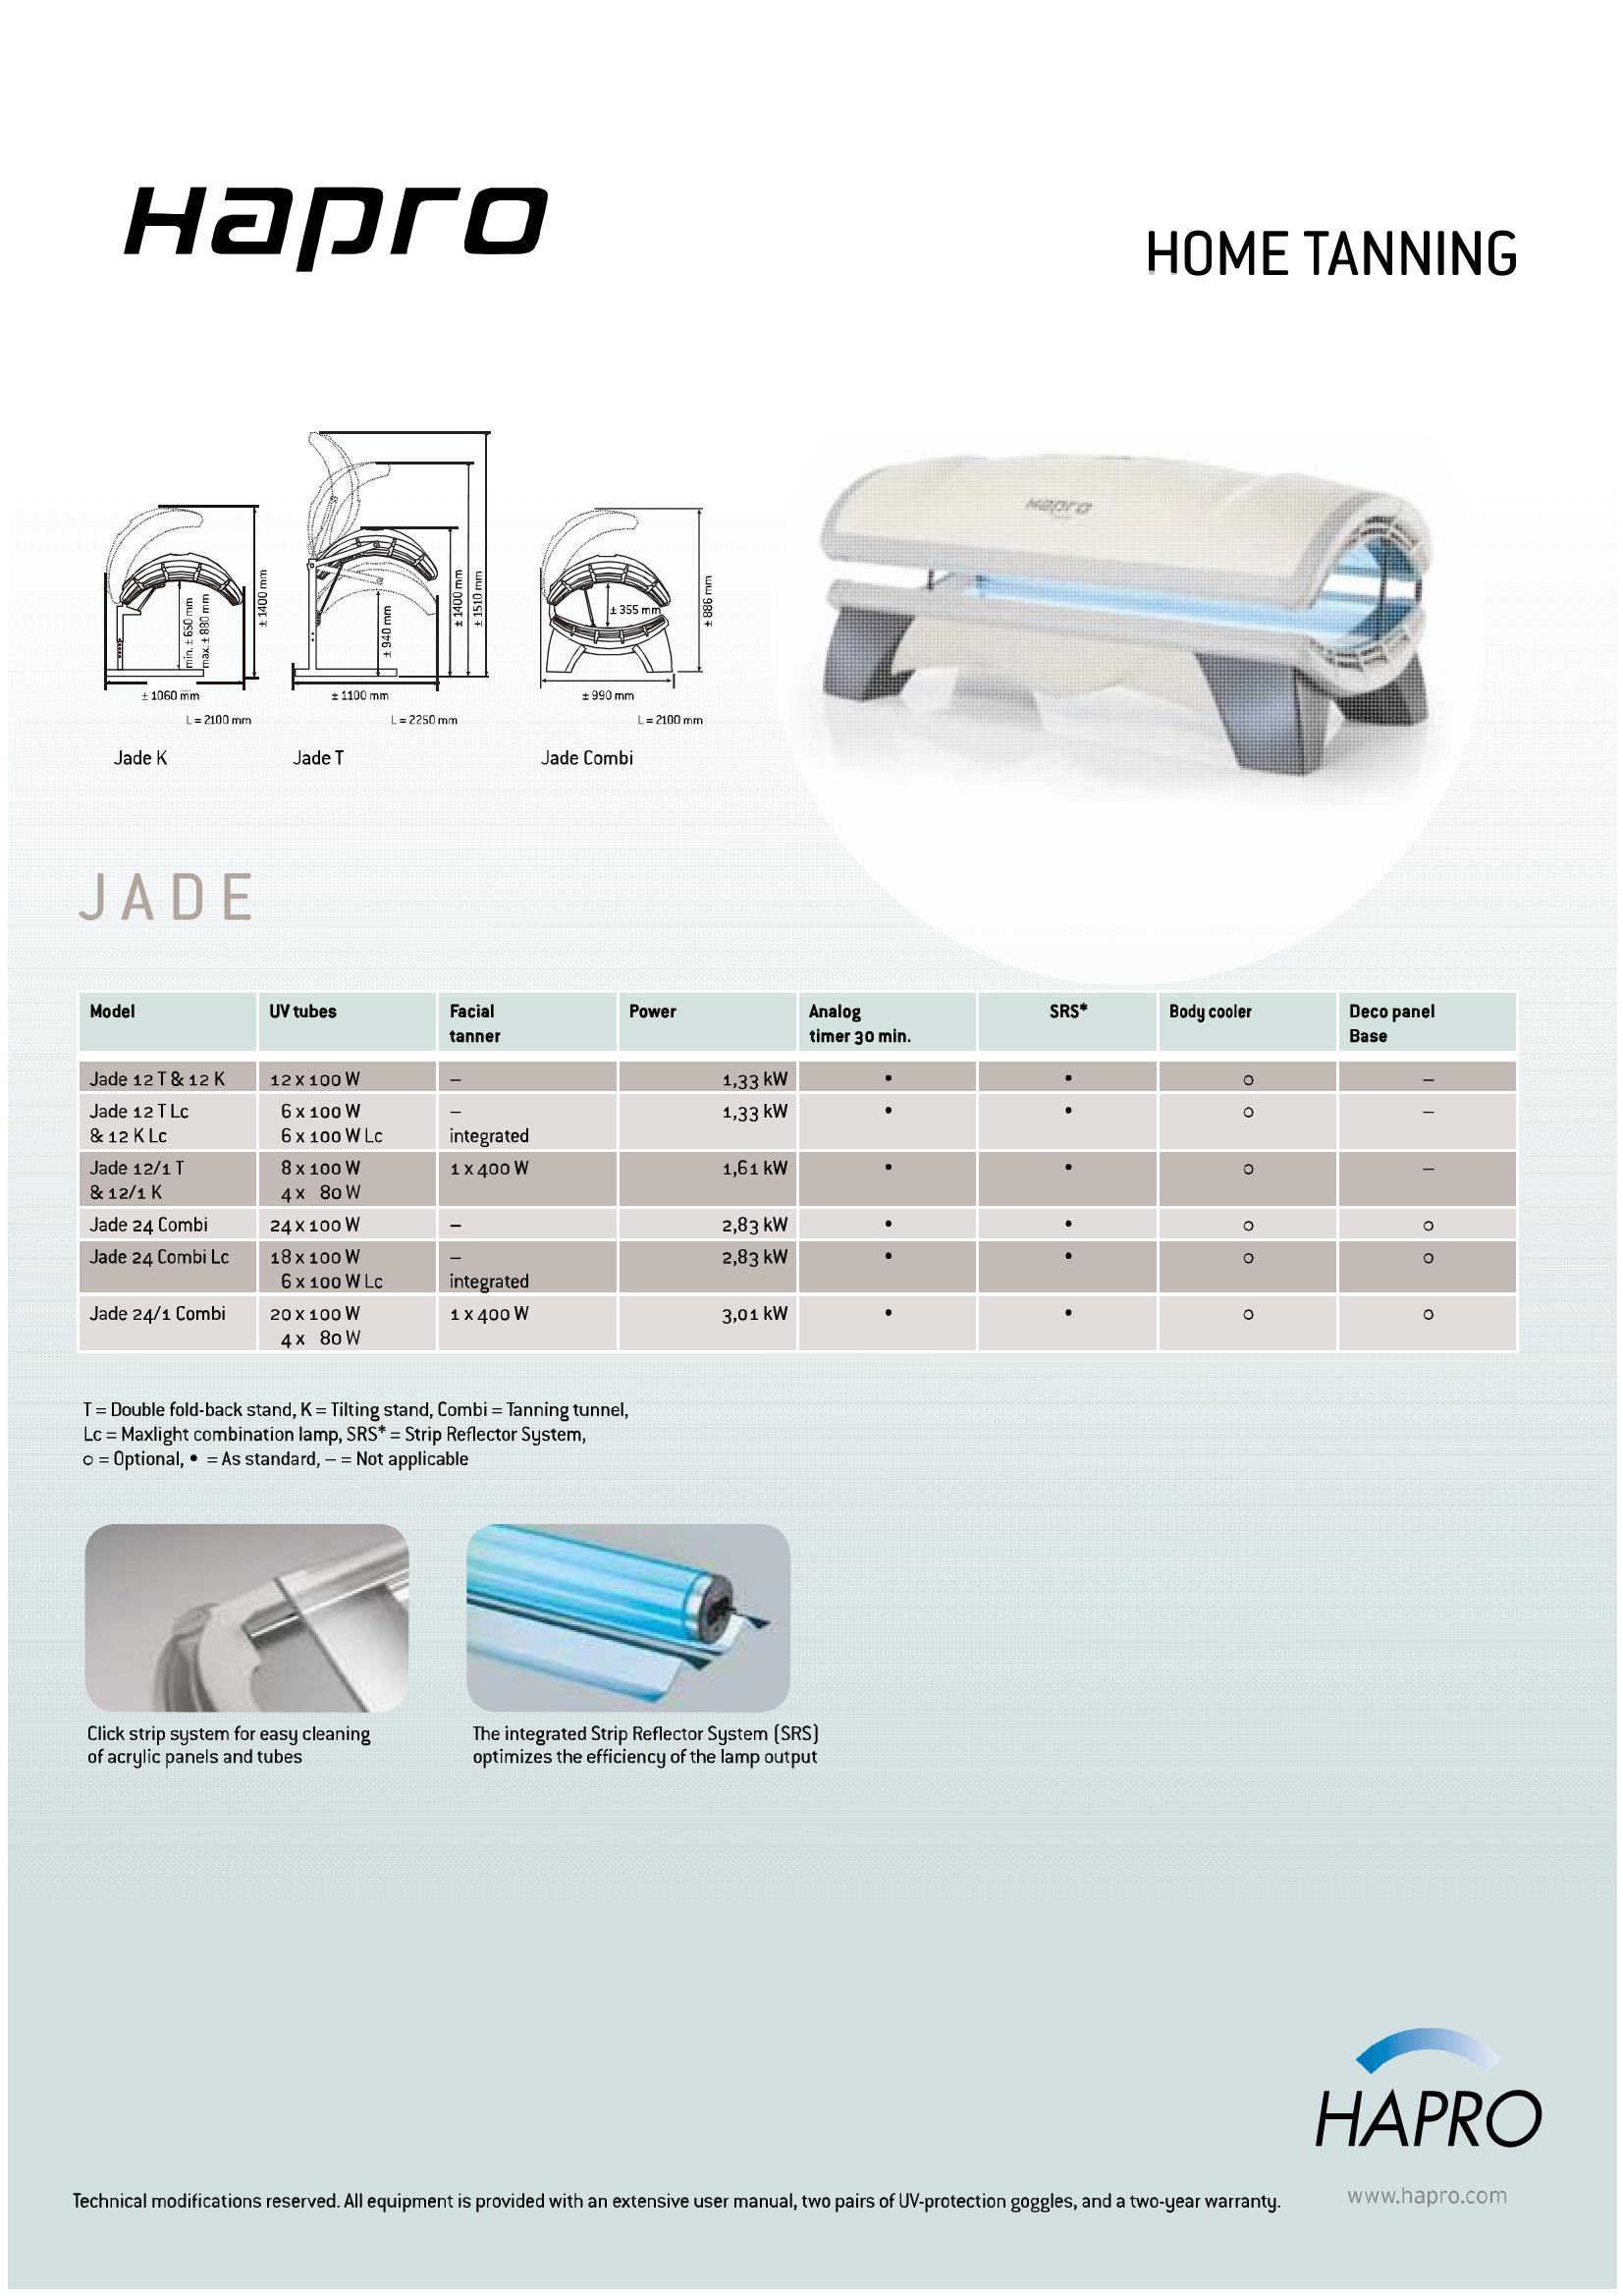 jade-tech-page-1.jpeg